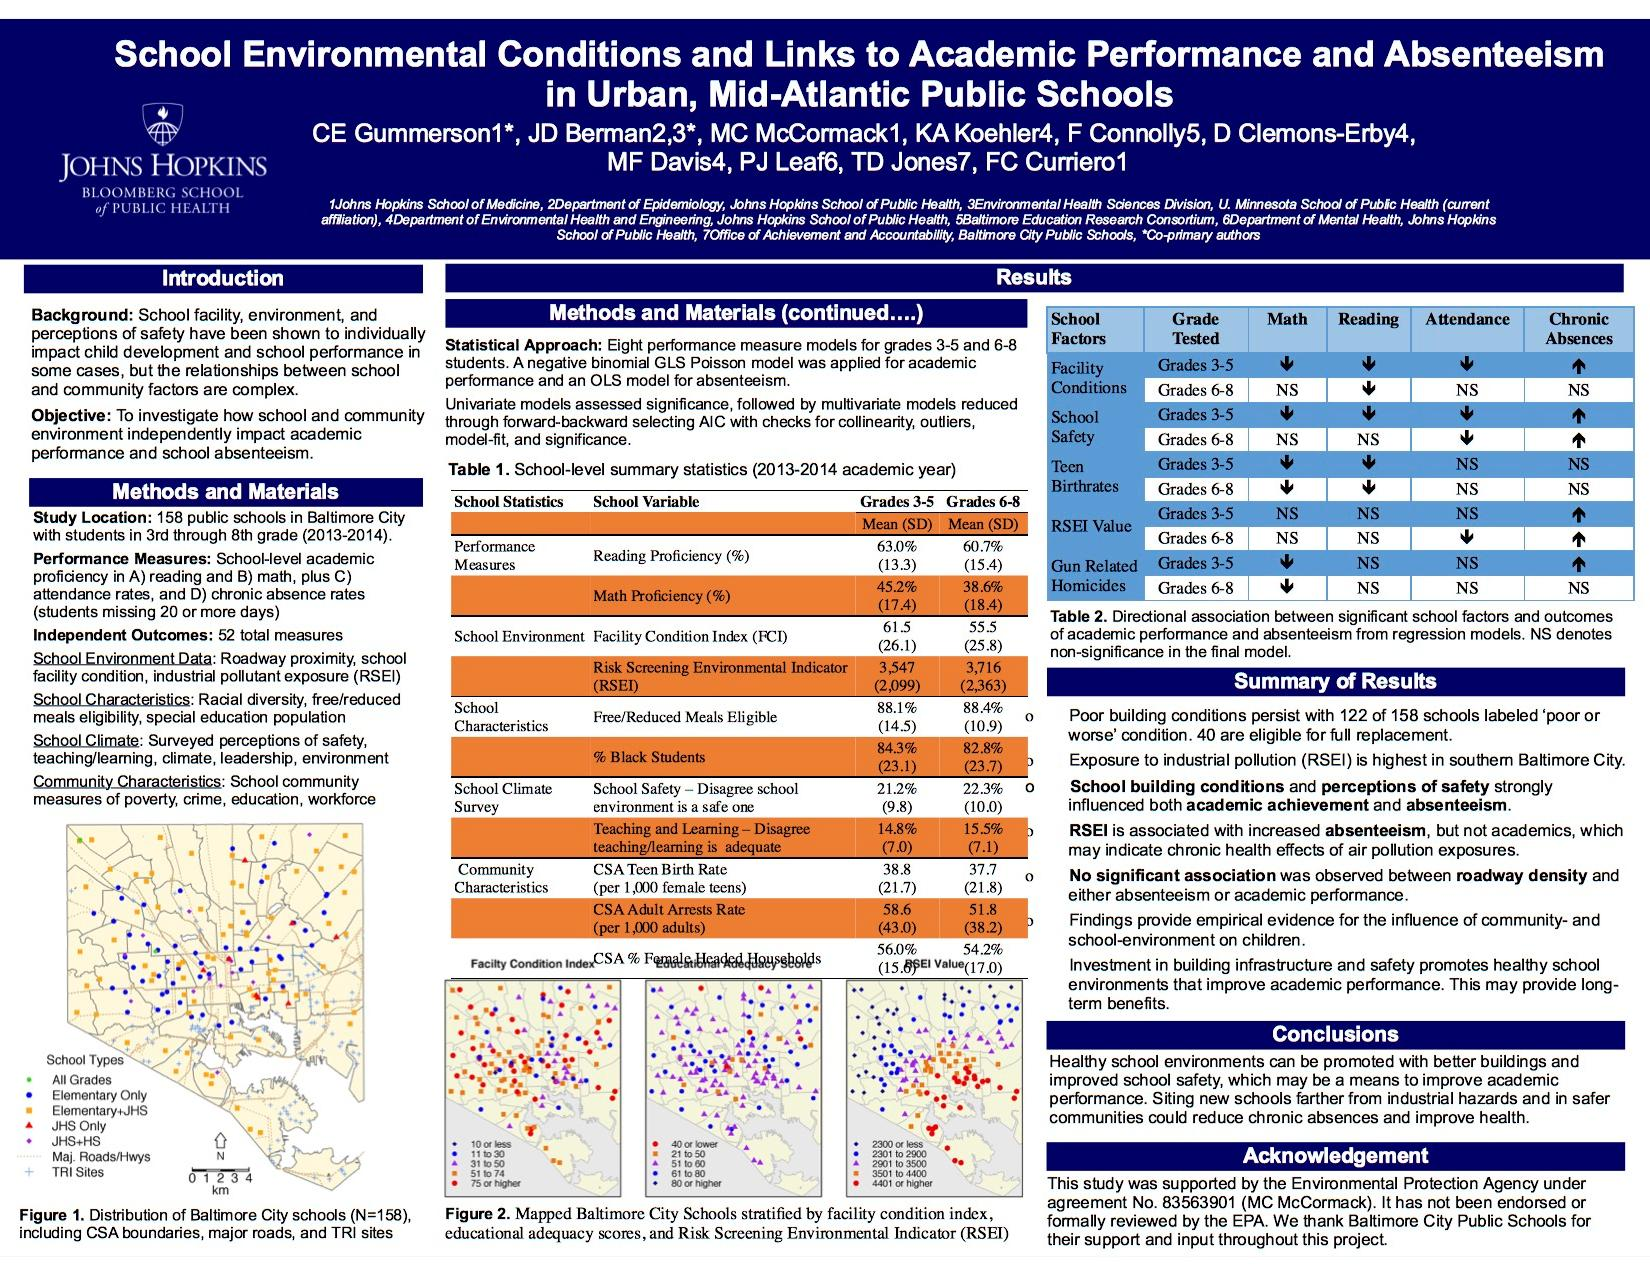 berman-poster-school-environment-absenteeism